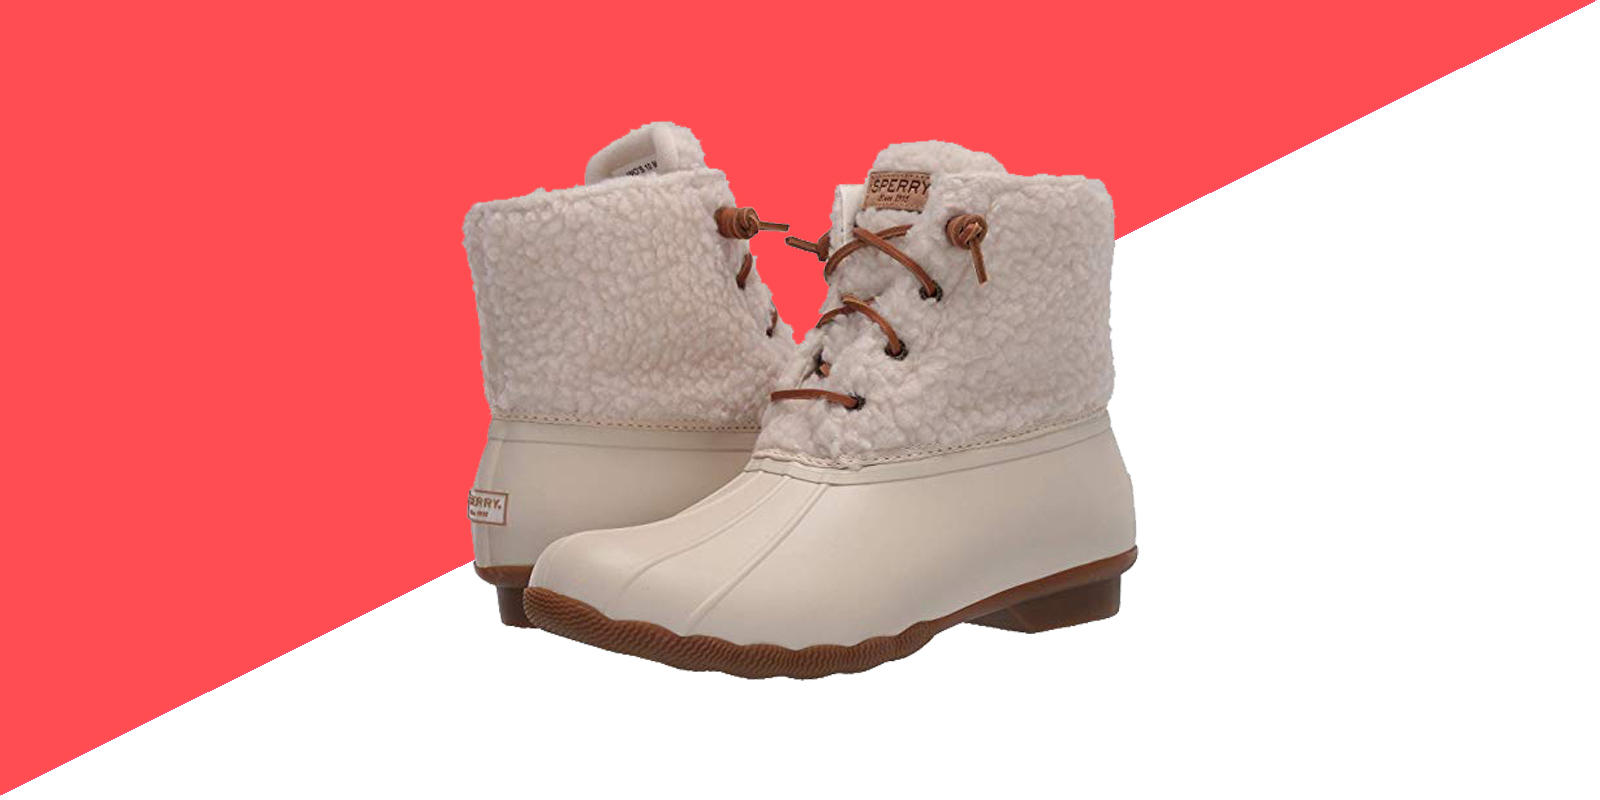 Stay warm in these Sperry snowboots